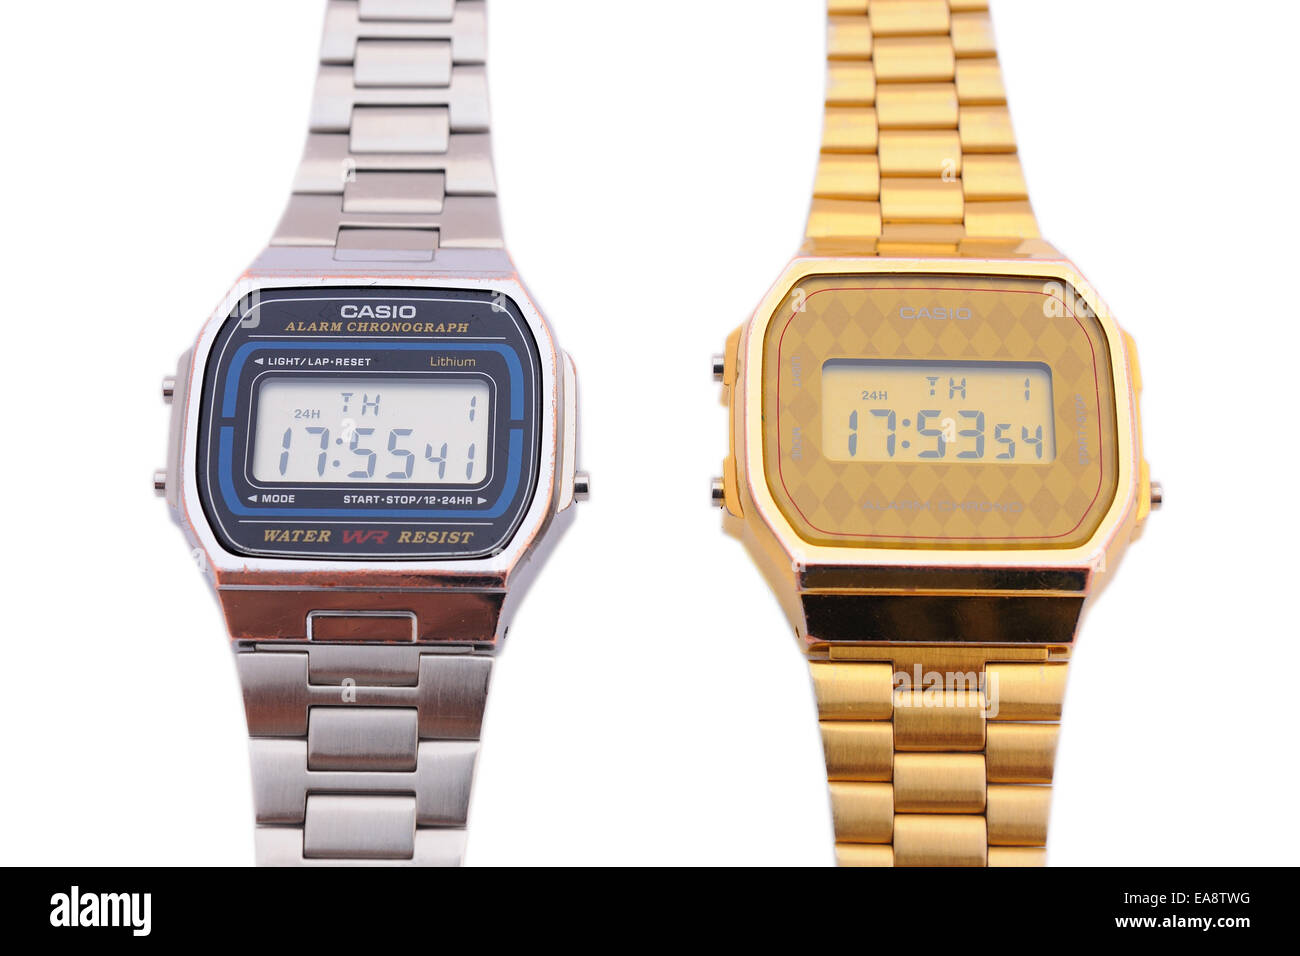 BARCELONA - JULY 12: Two Casio watches one in gold color and the other one in silver on July 12, 2013 in Barcelona, - Stock Image